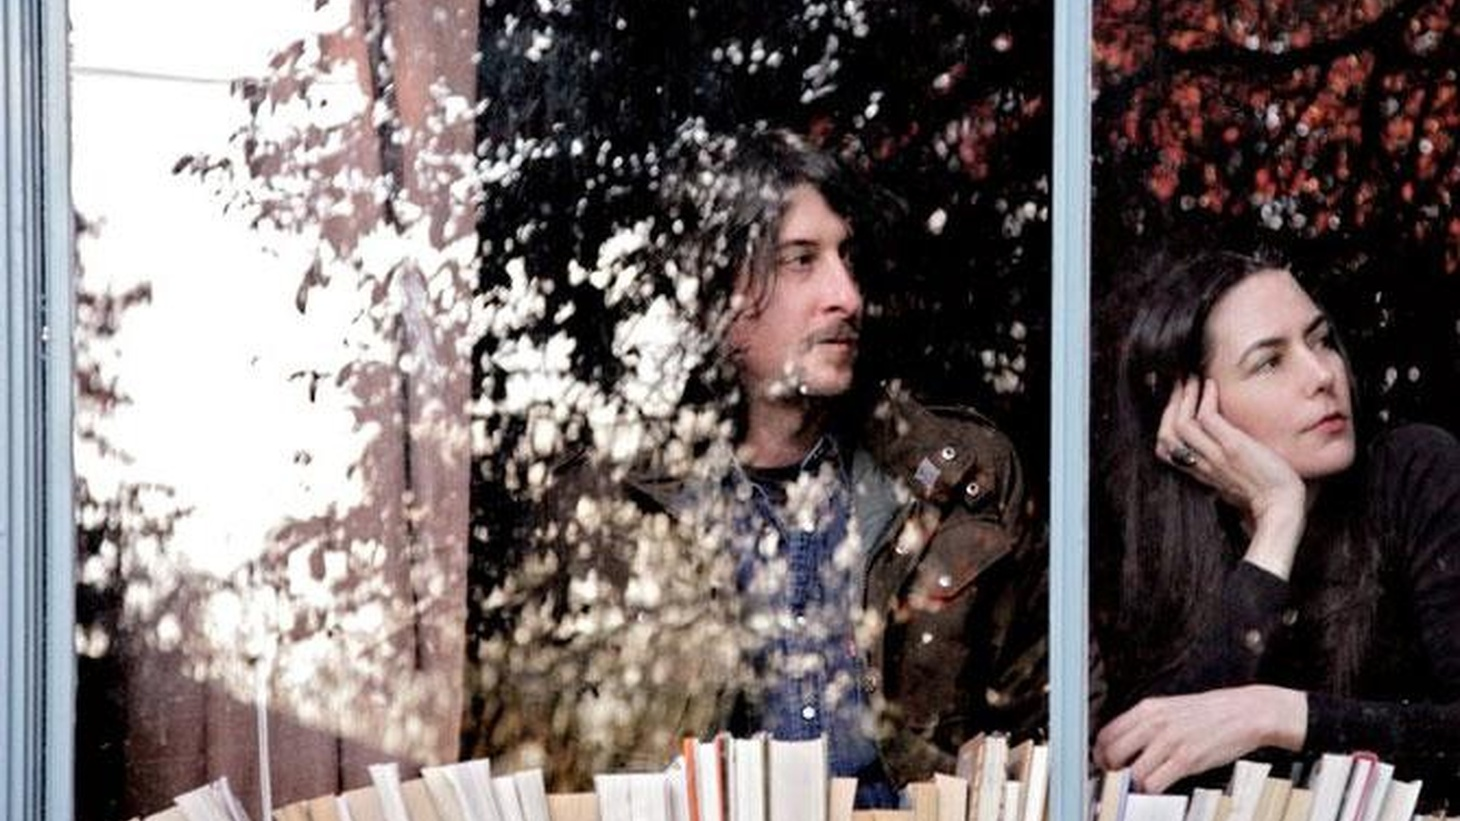 Jesse Sykes & the Sweet Hereafter offer mystical songs channeling the psychedelic sound of the 60's. Seductive and hypnotic...